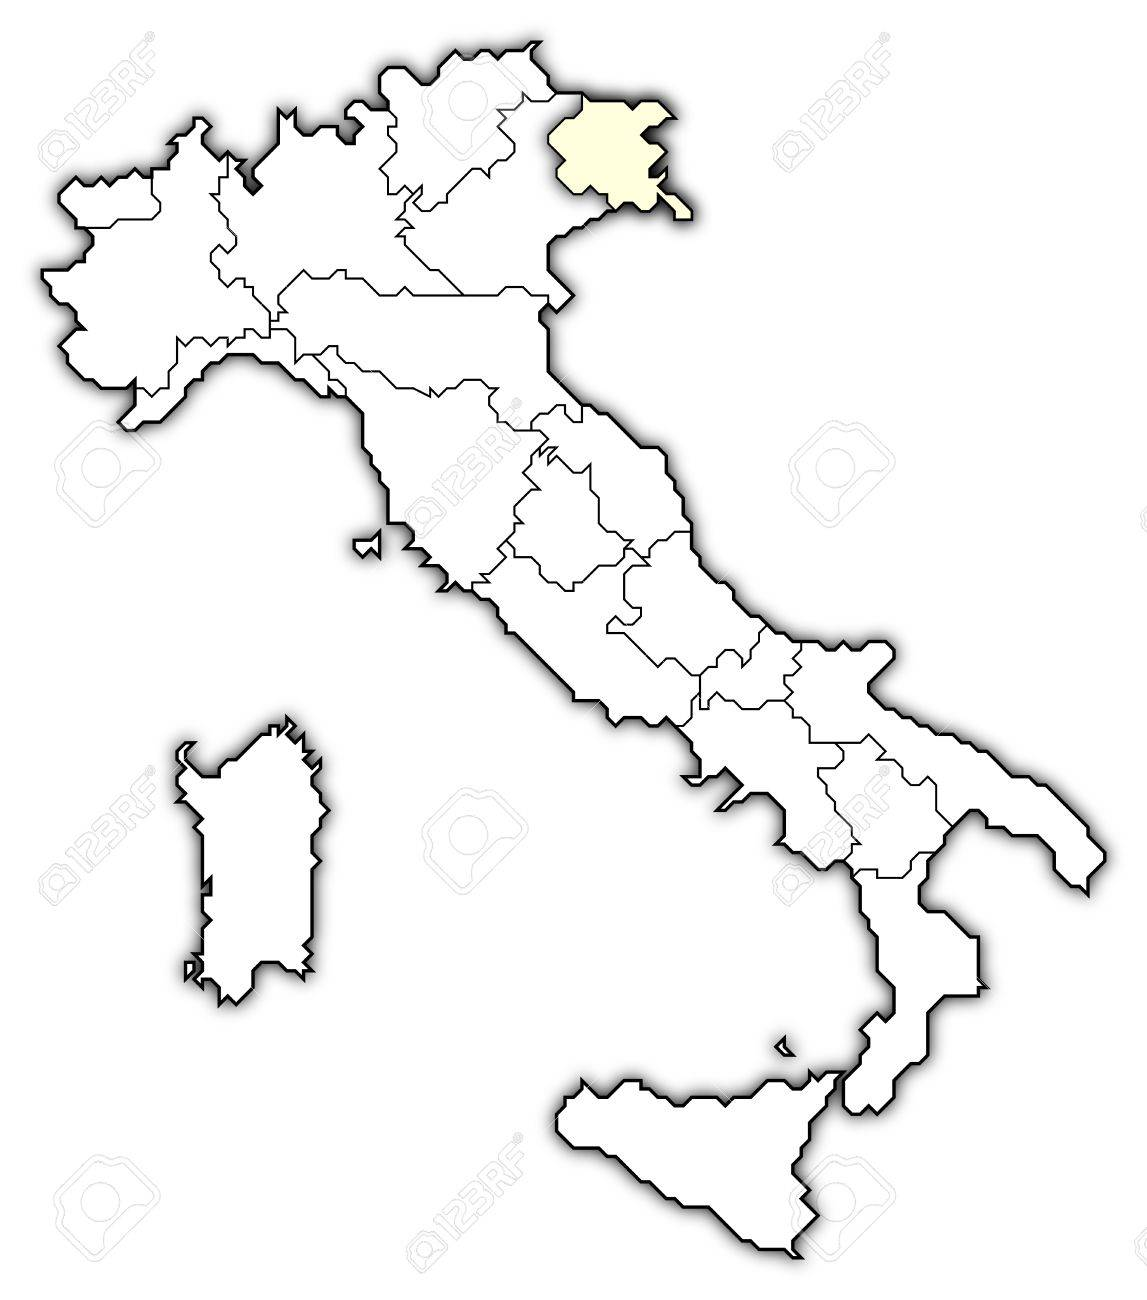 Friuli Italy Map.Political Map Of Italy With The Several Regions Where Friuli Venezia